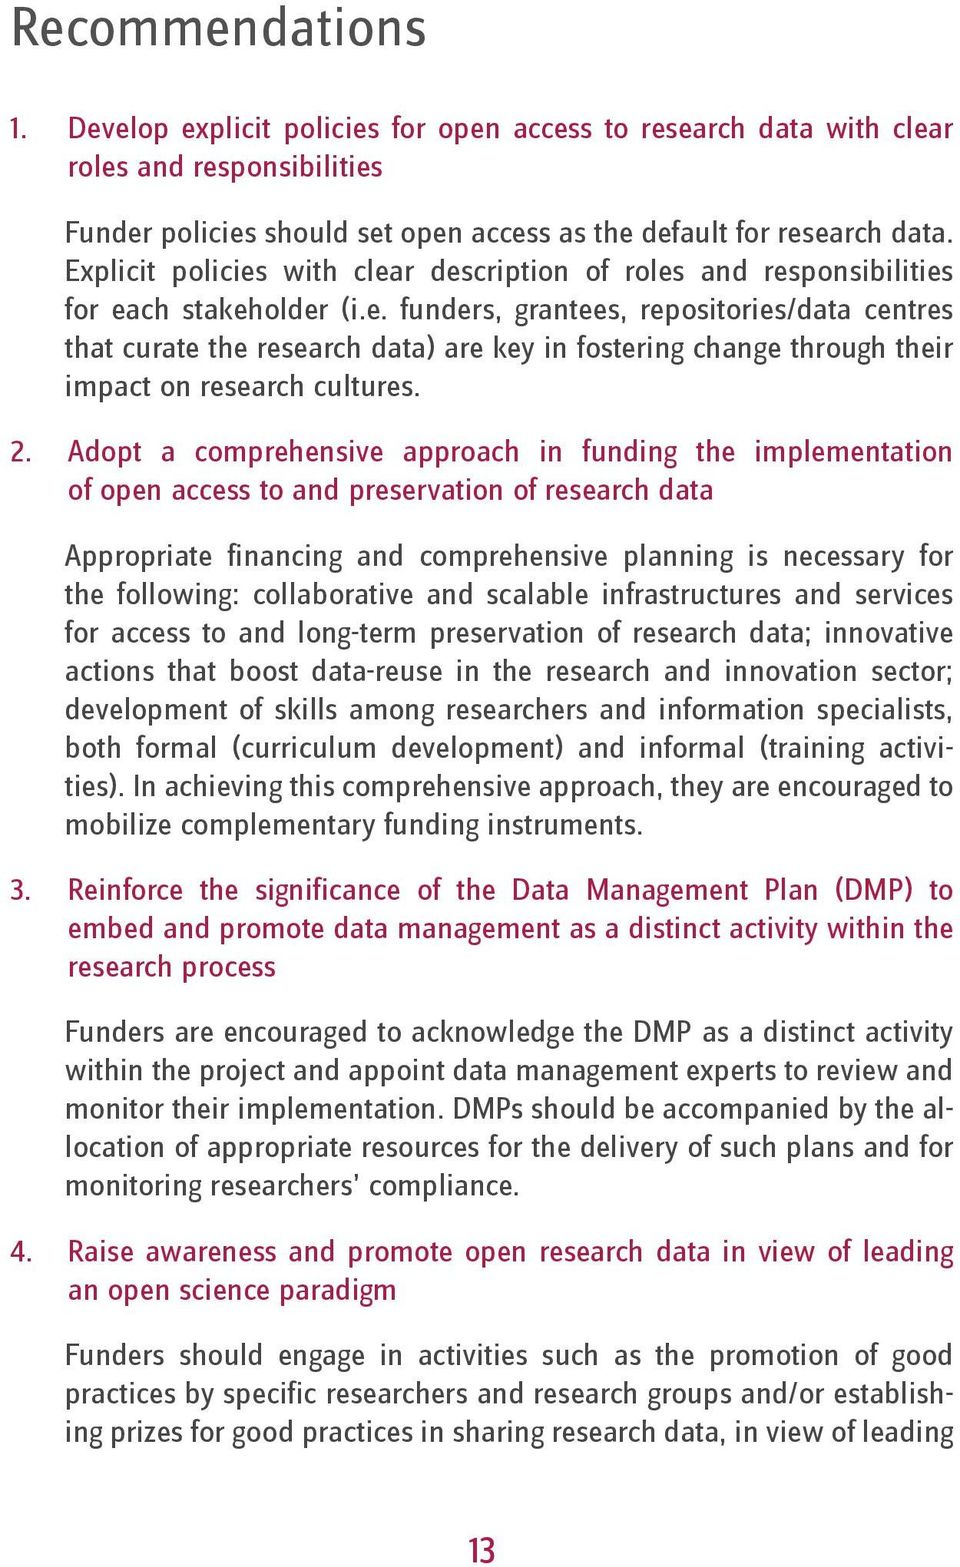 2. Adopt a comprehensive approach in funding the implementation of open access to and preservation of research data Appropriate financing and comprehensive planning is necessary for the following: